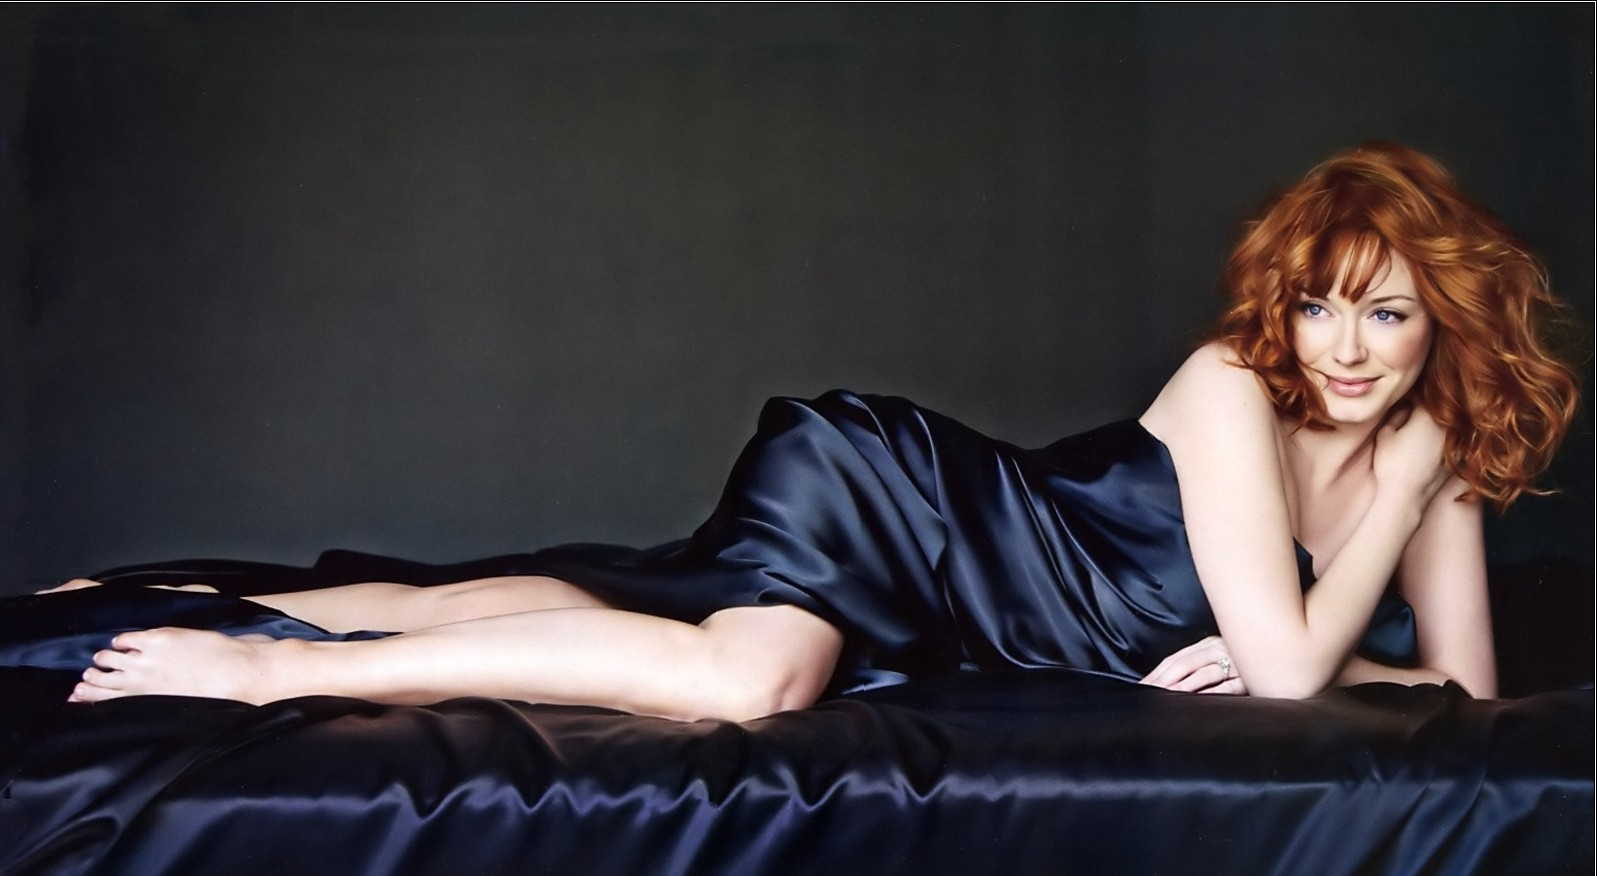 christina-hendricks-hot